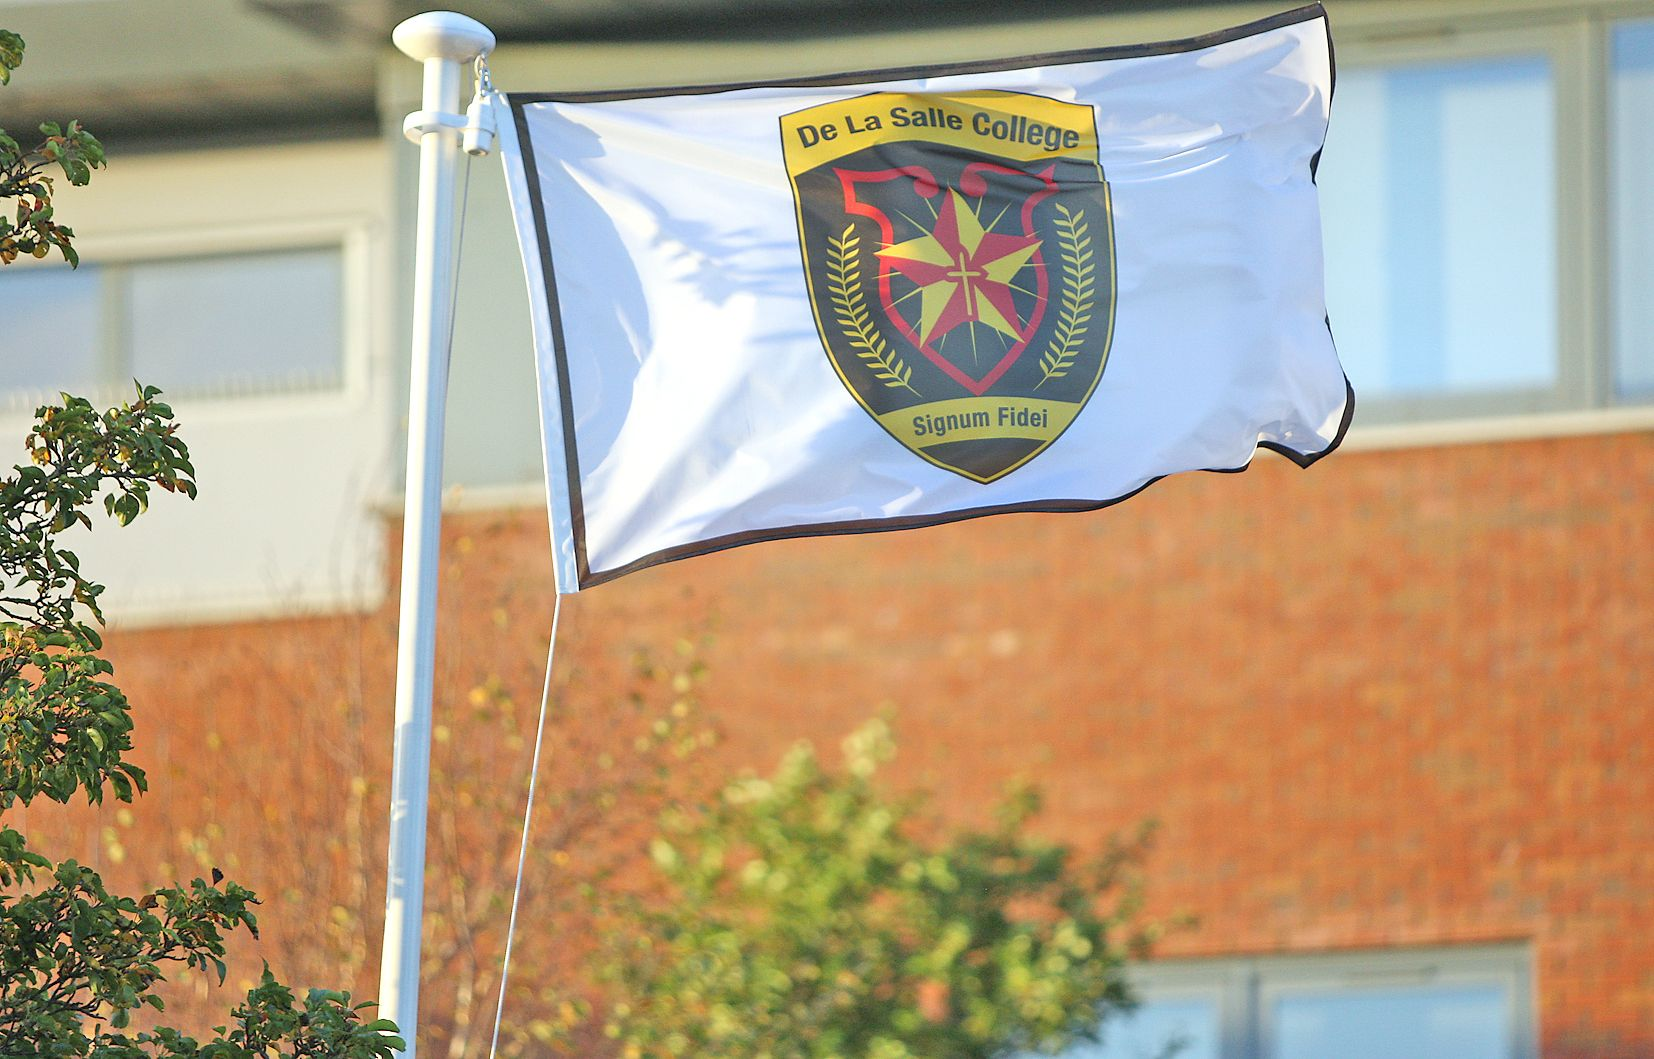 COVID IMPACT: More pupils at La Salle College are self-isolating